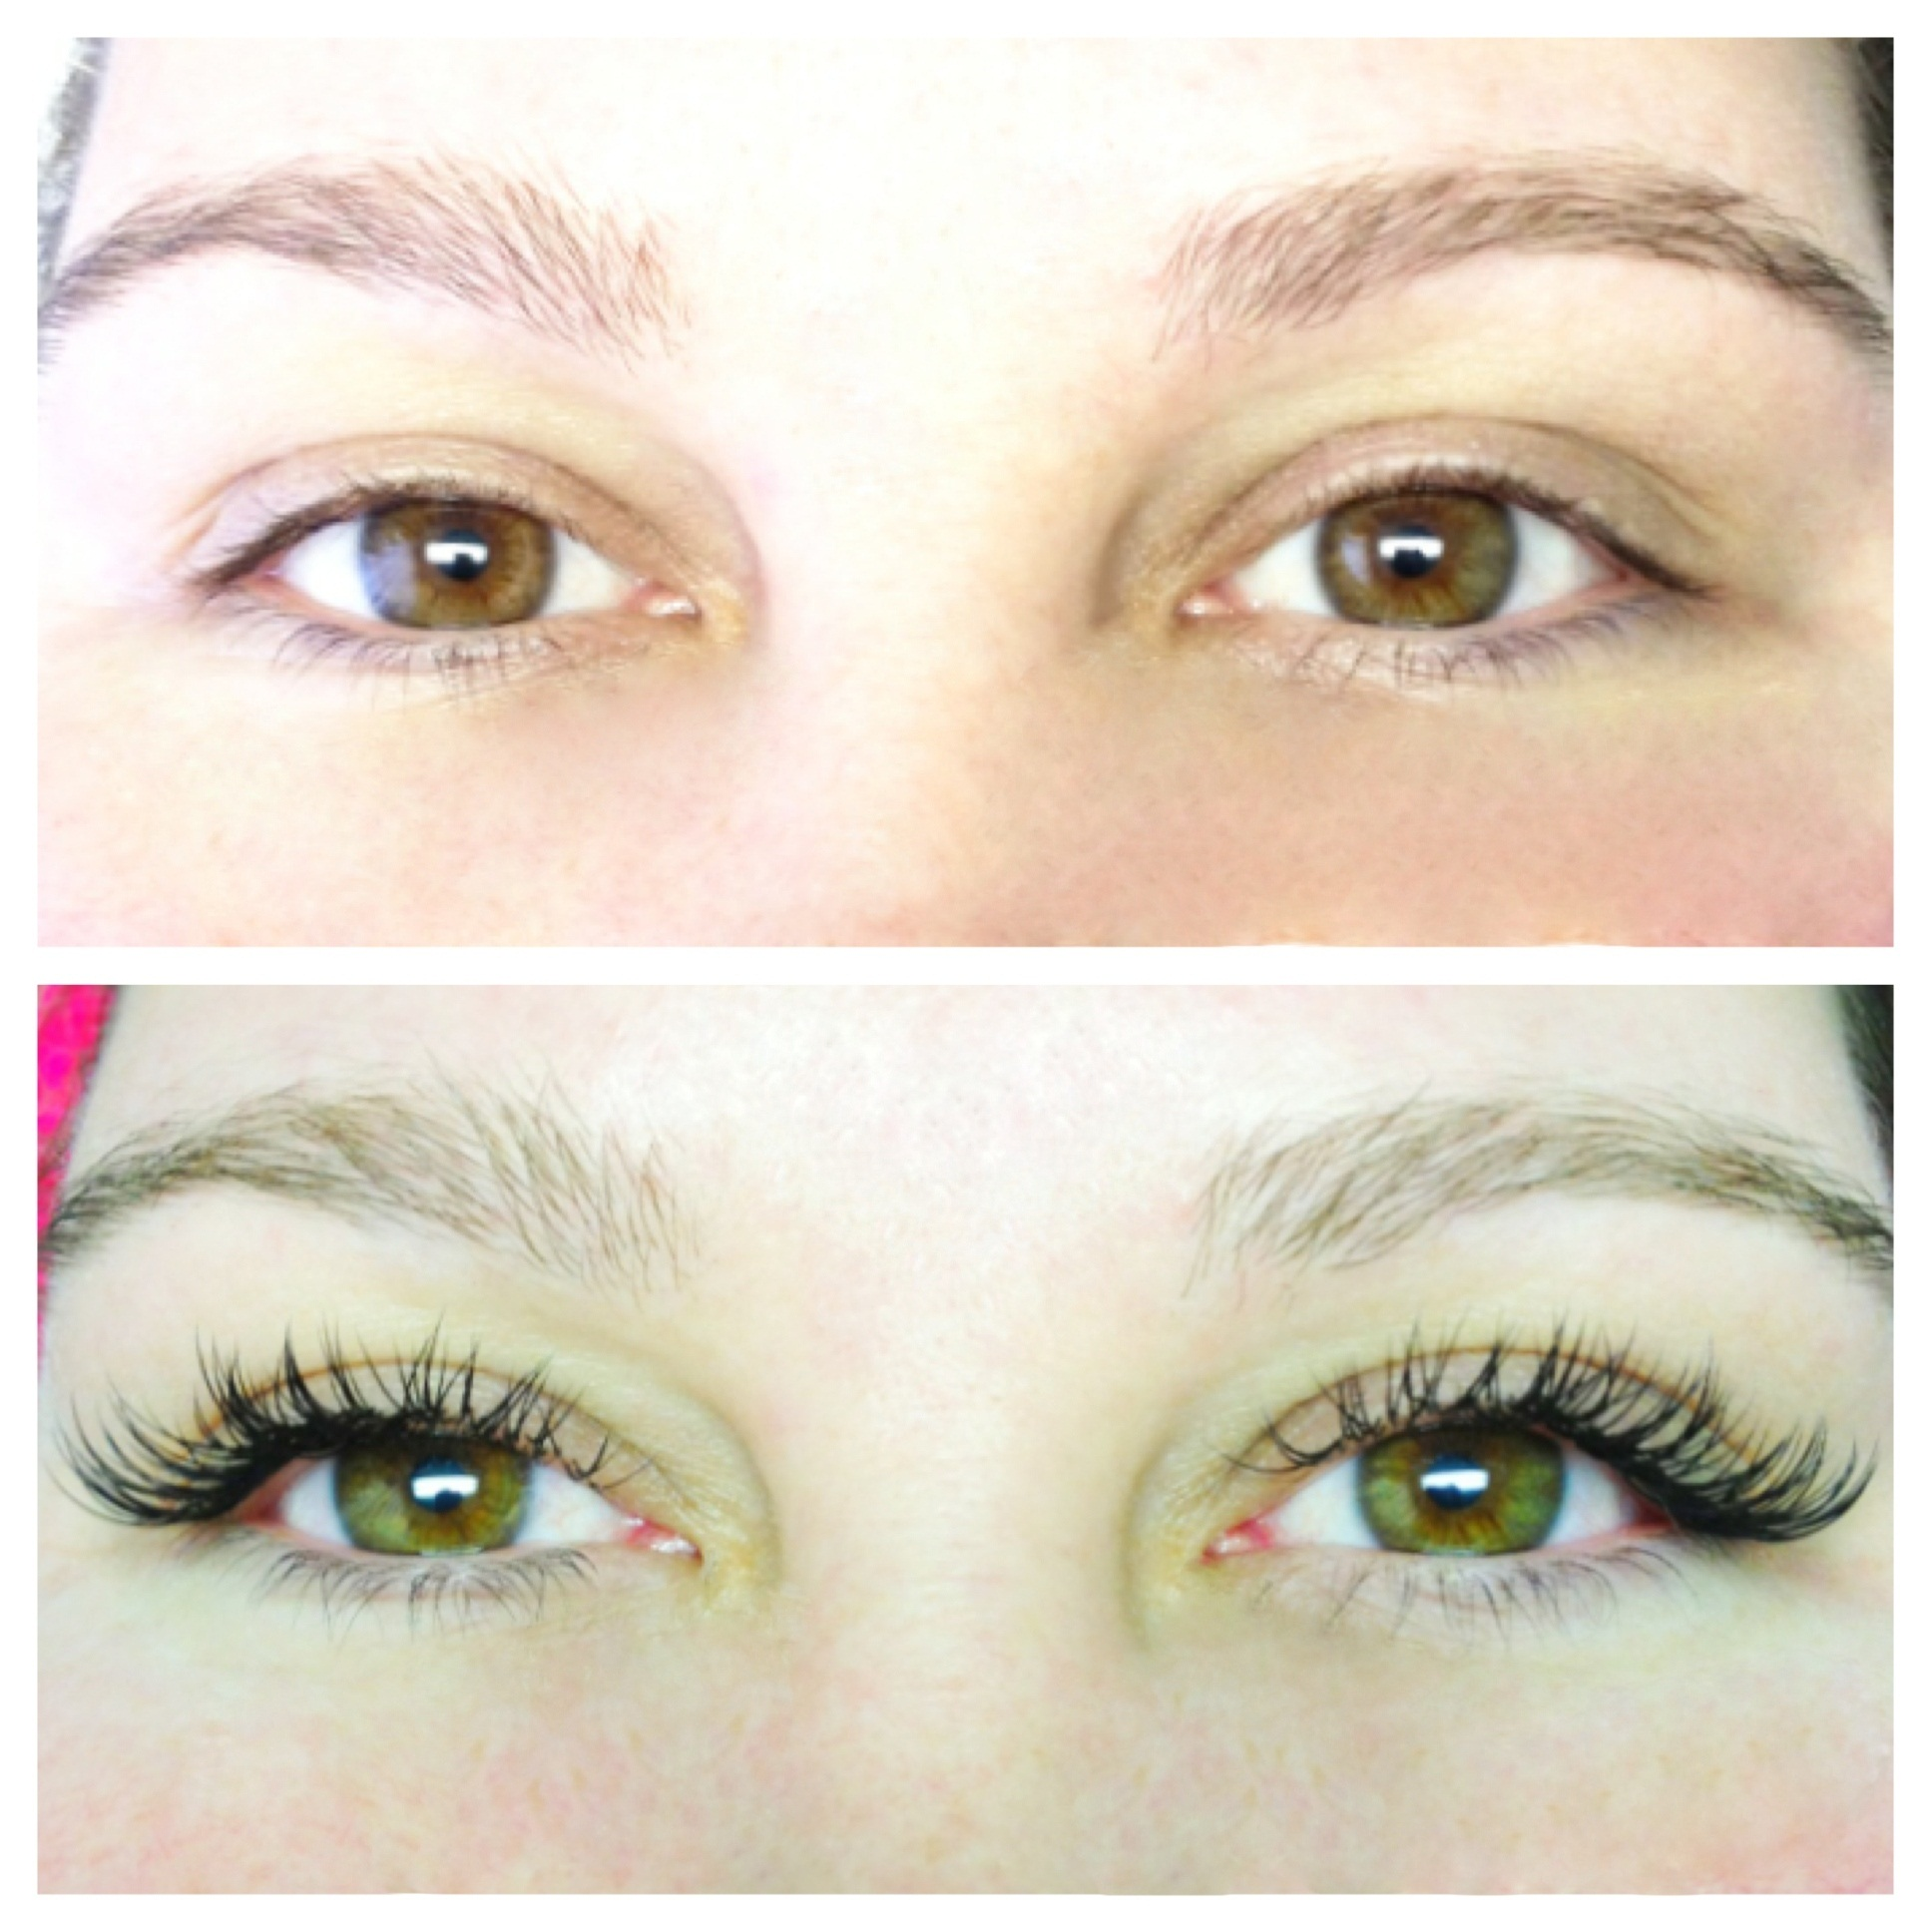 Dramatic Lashes Nantucket Island Facials waxxing spray tan.jpg